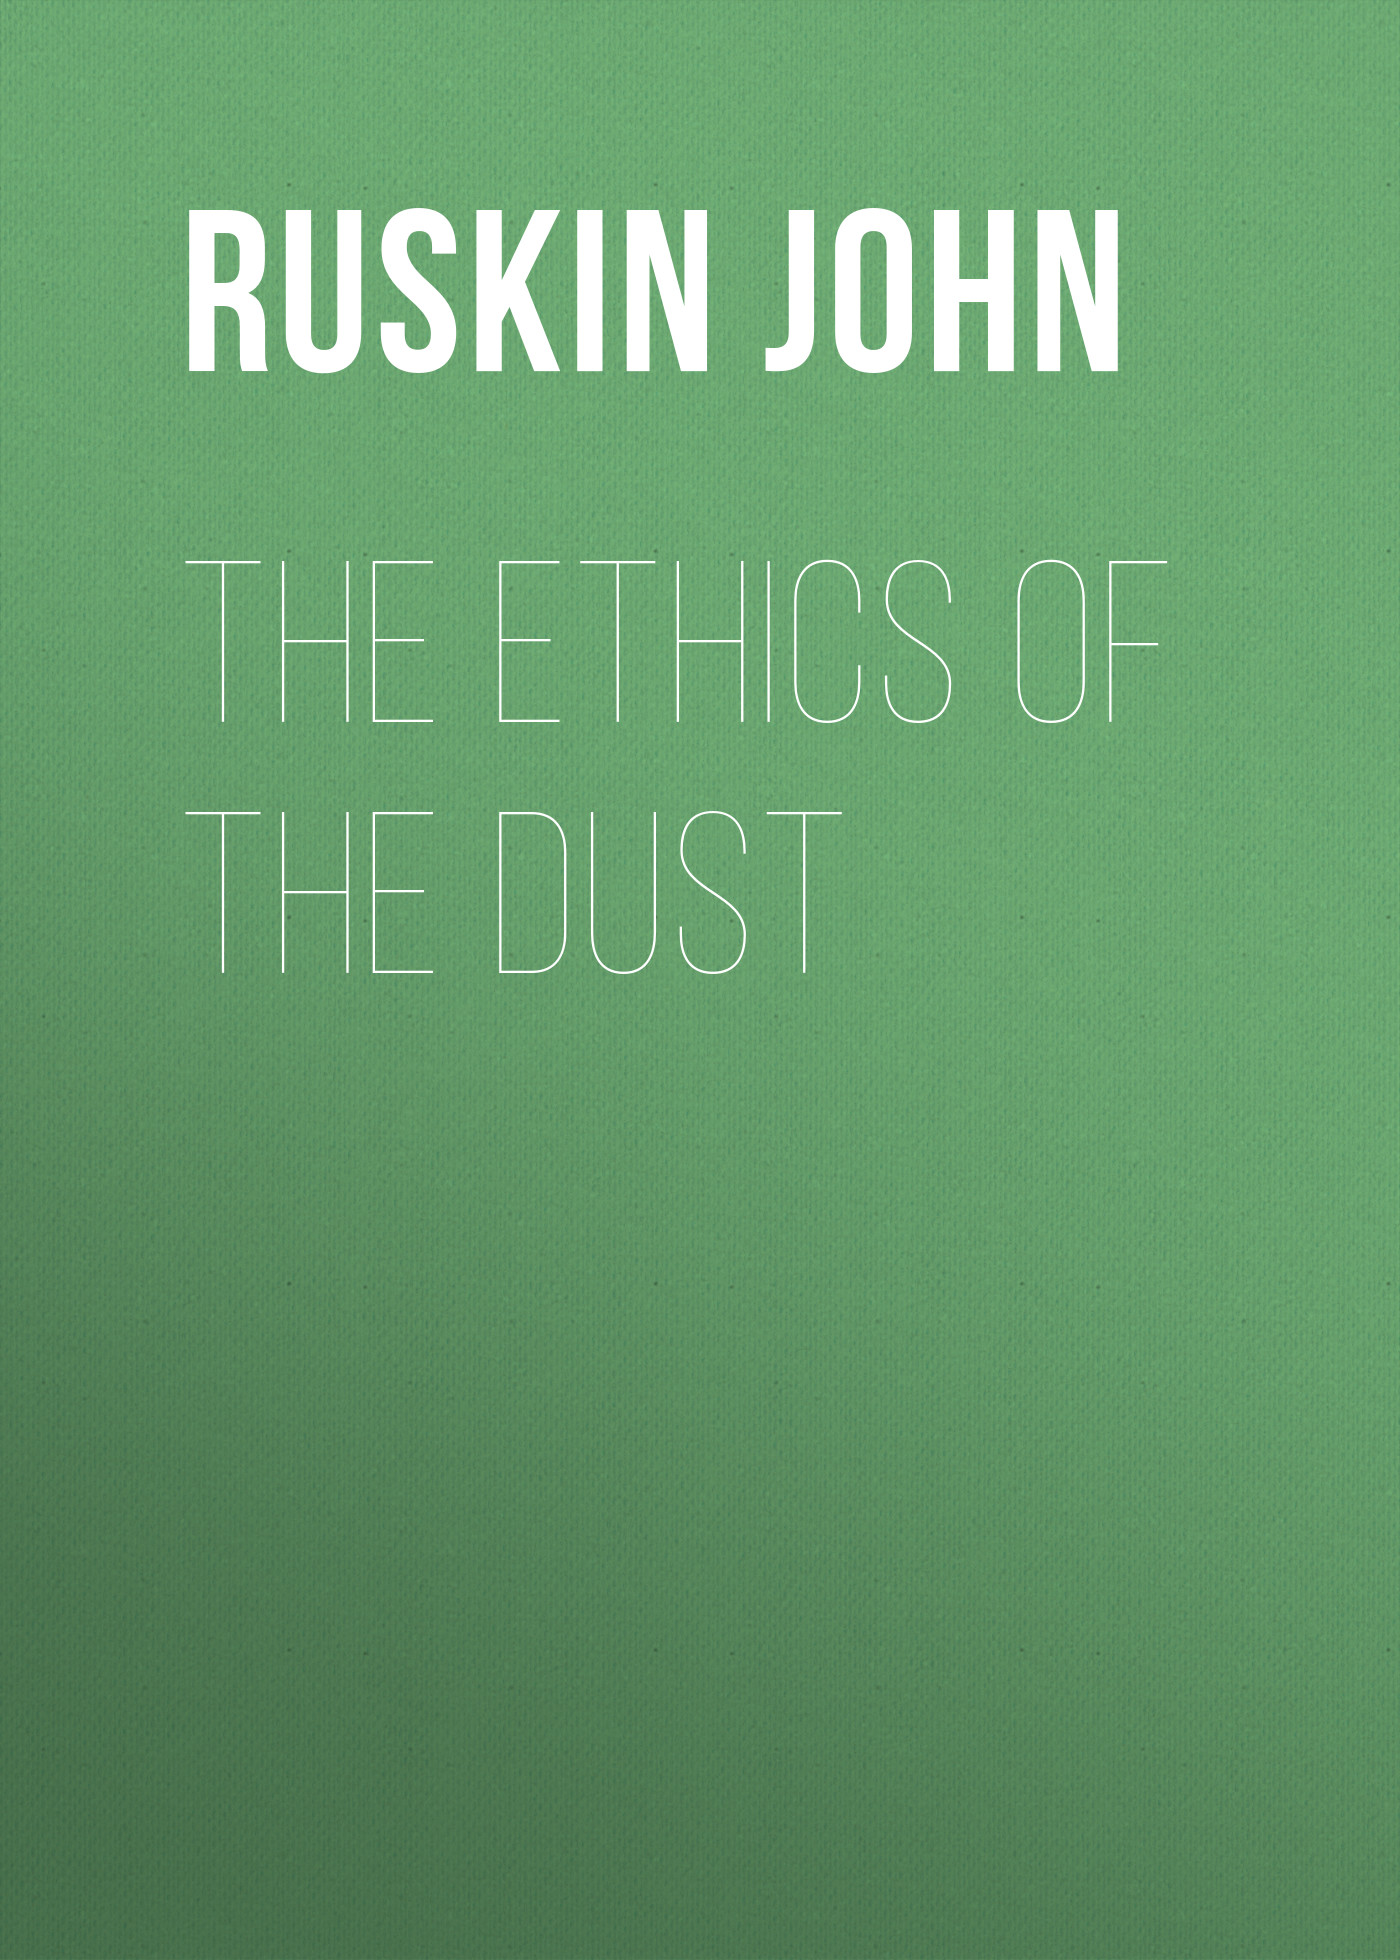 Ruskin John The Ethics of the Dust john ruskin the thoughts of john ruskin